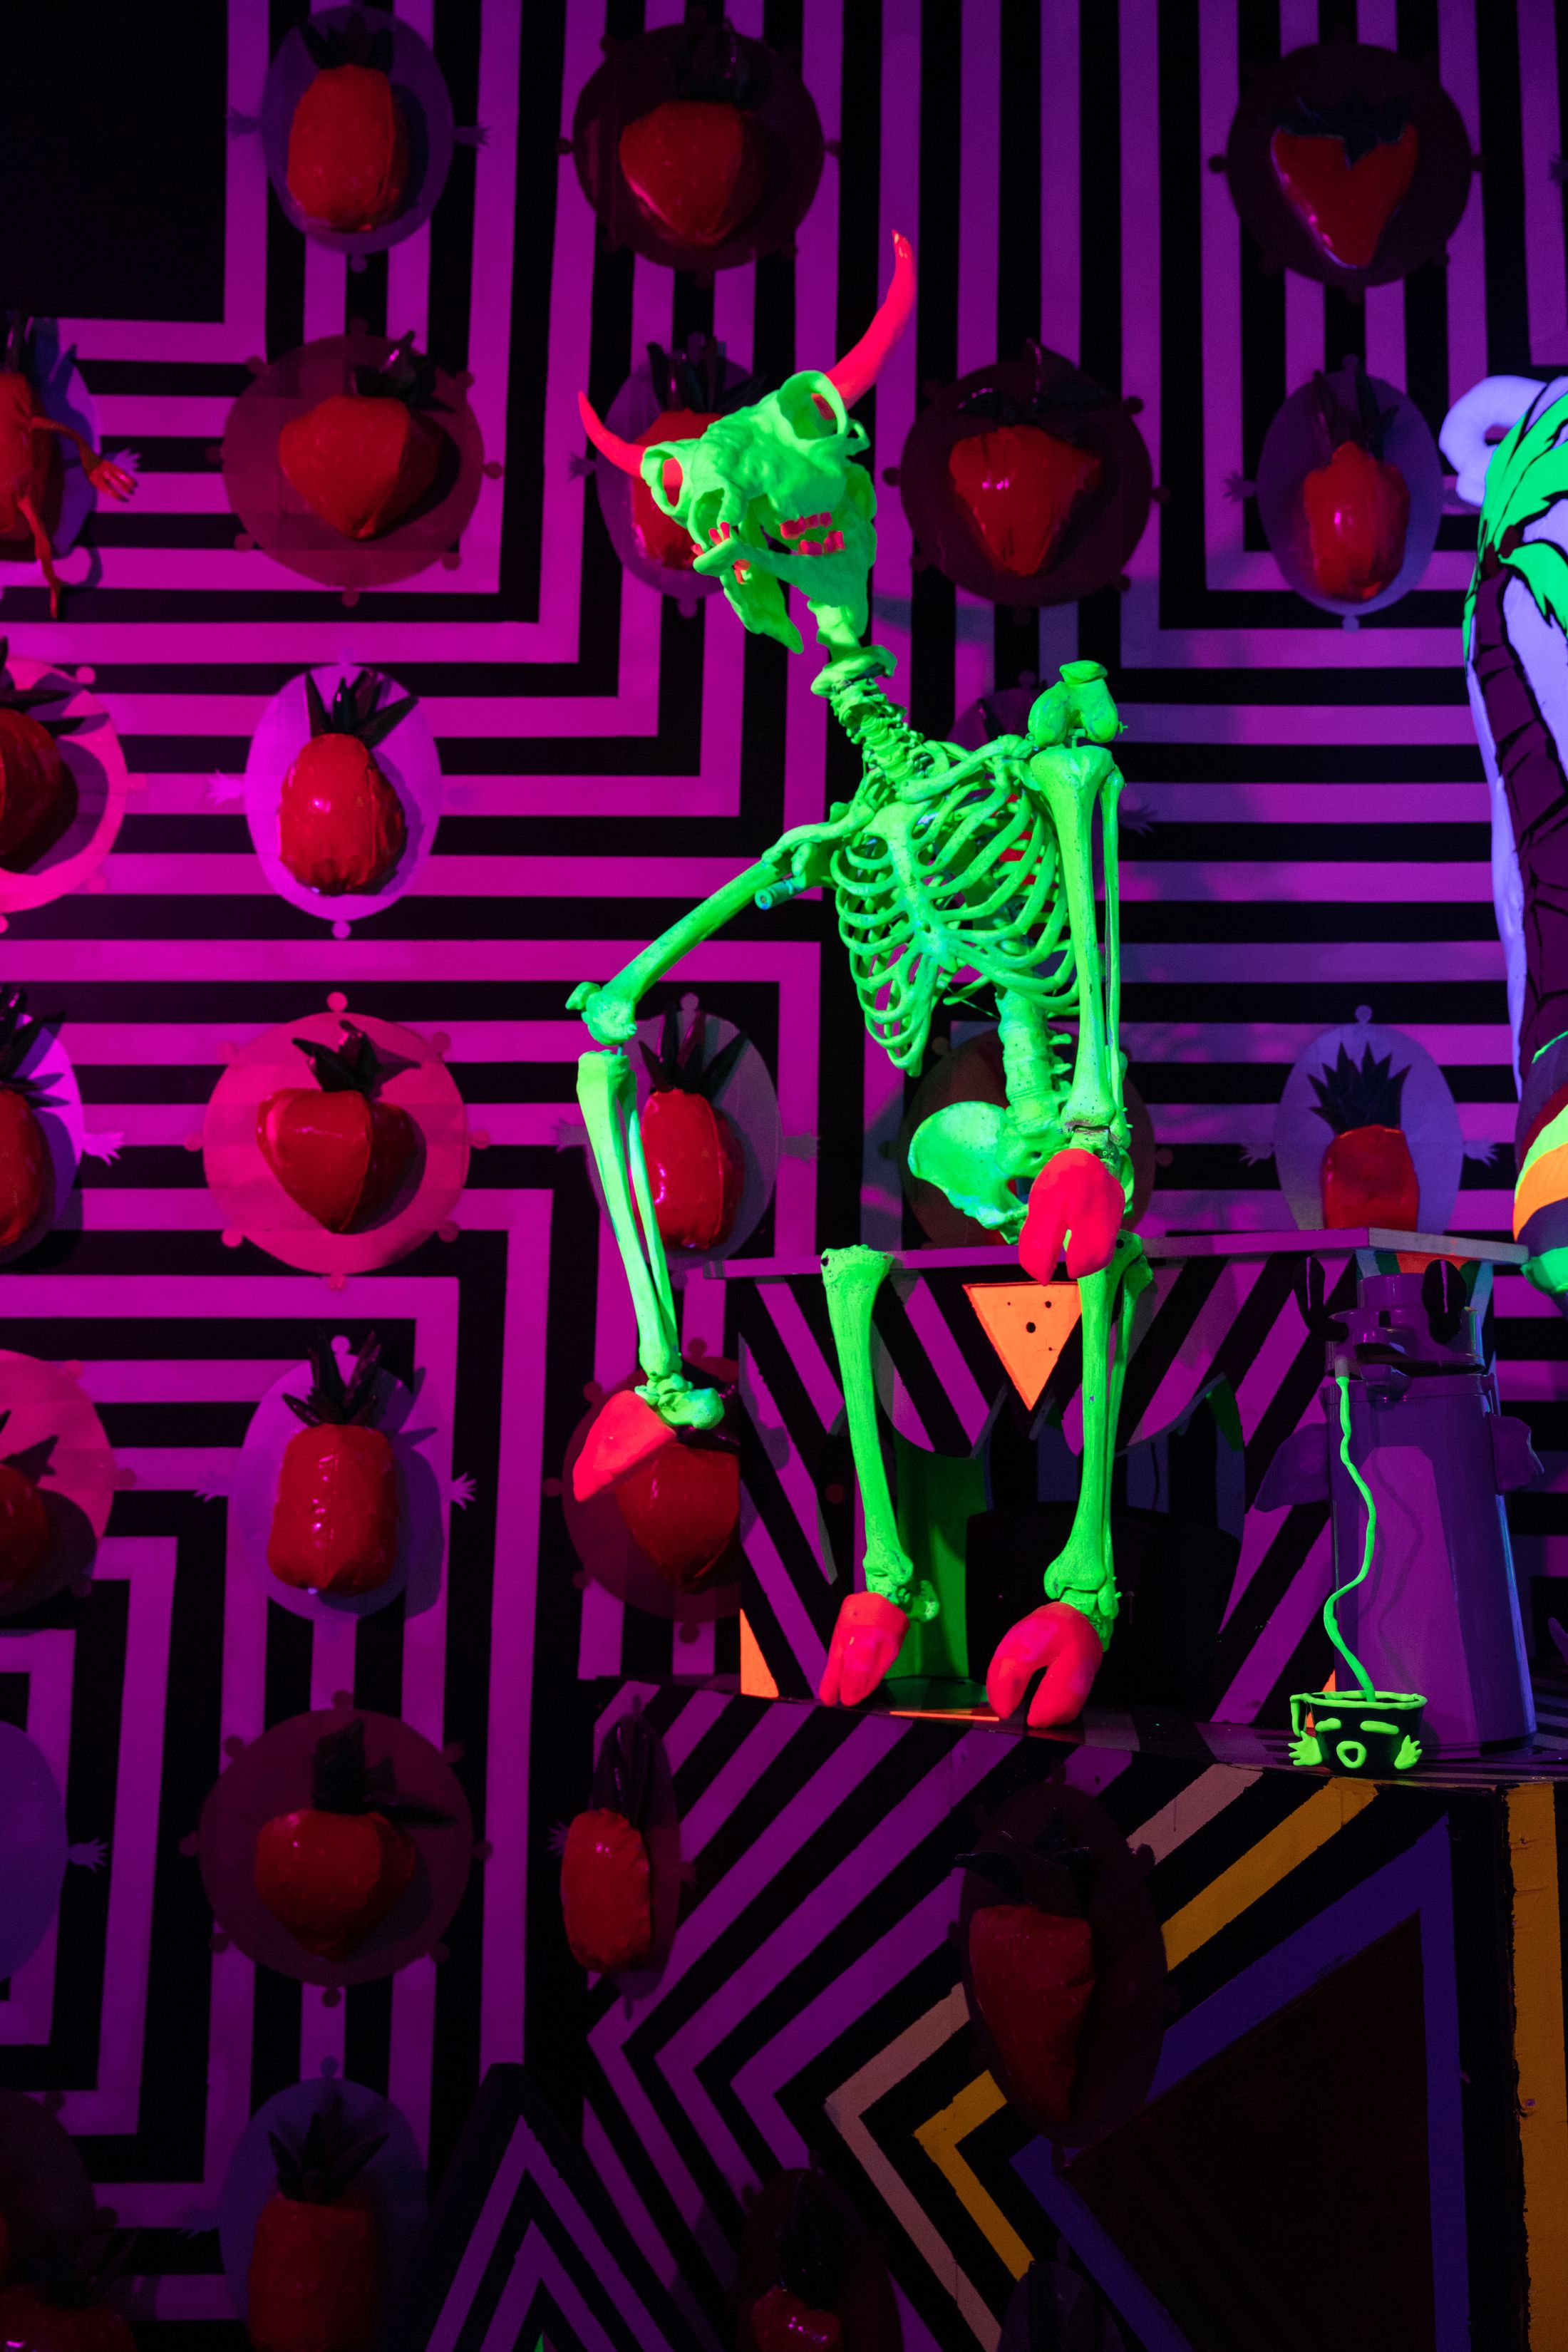 Neon skeleton against a striped wall